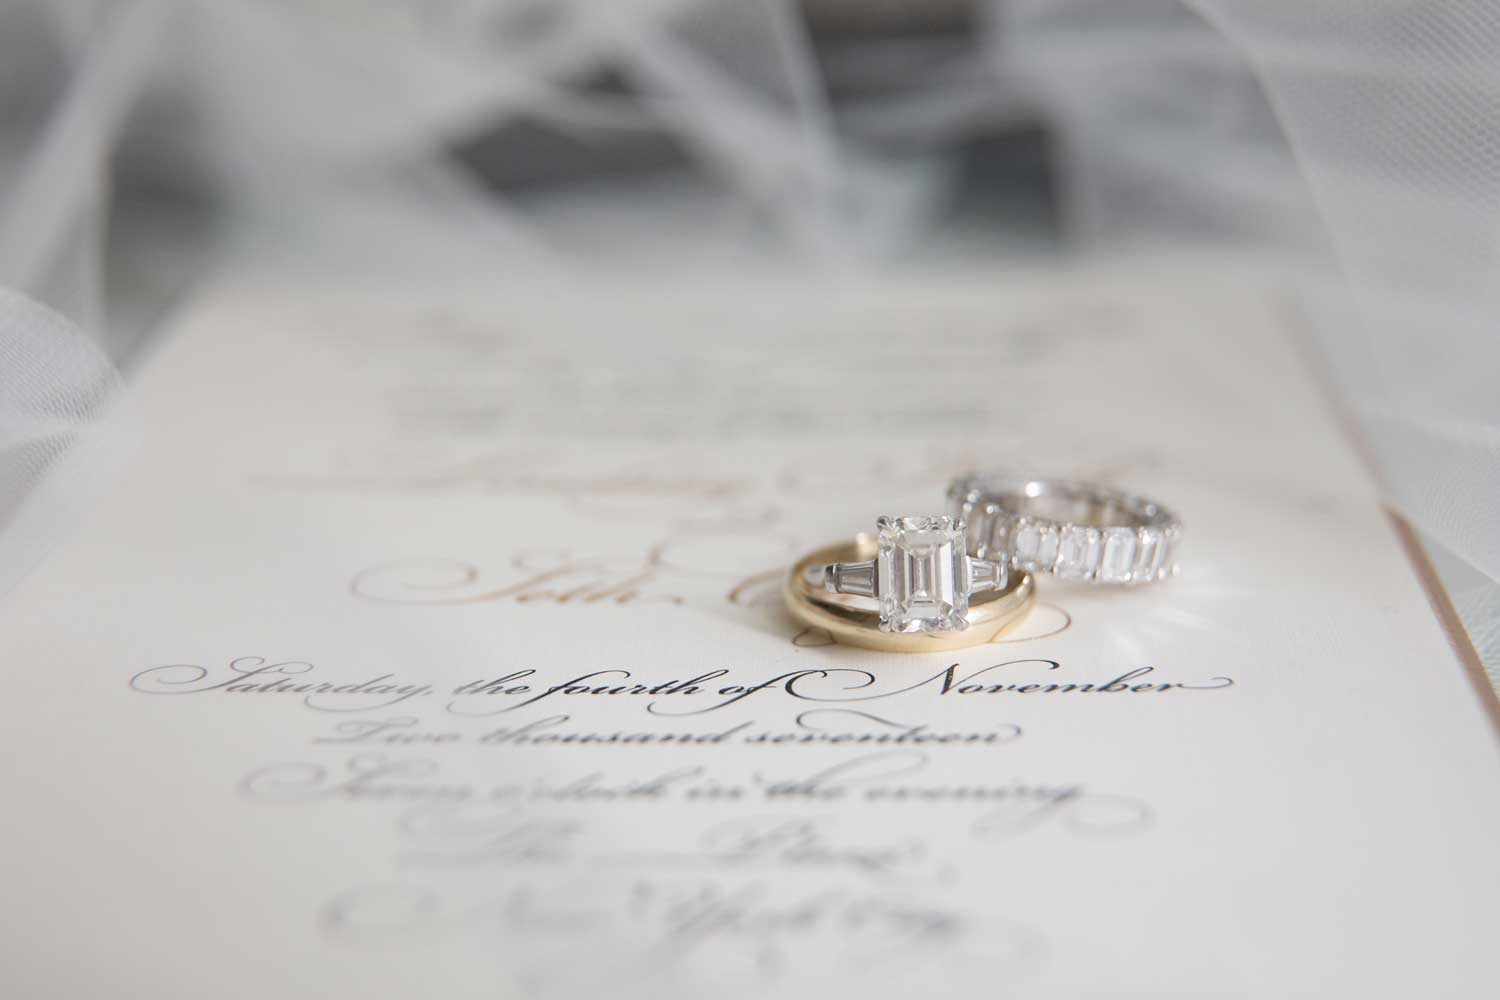 close up of engagement ring and wedding rings on invitation detail shot for your wedding album